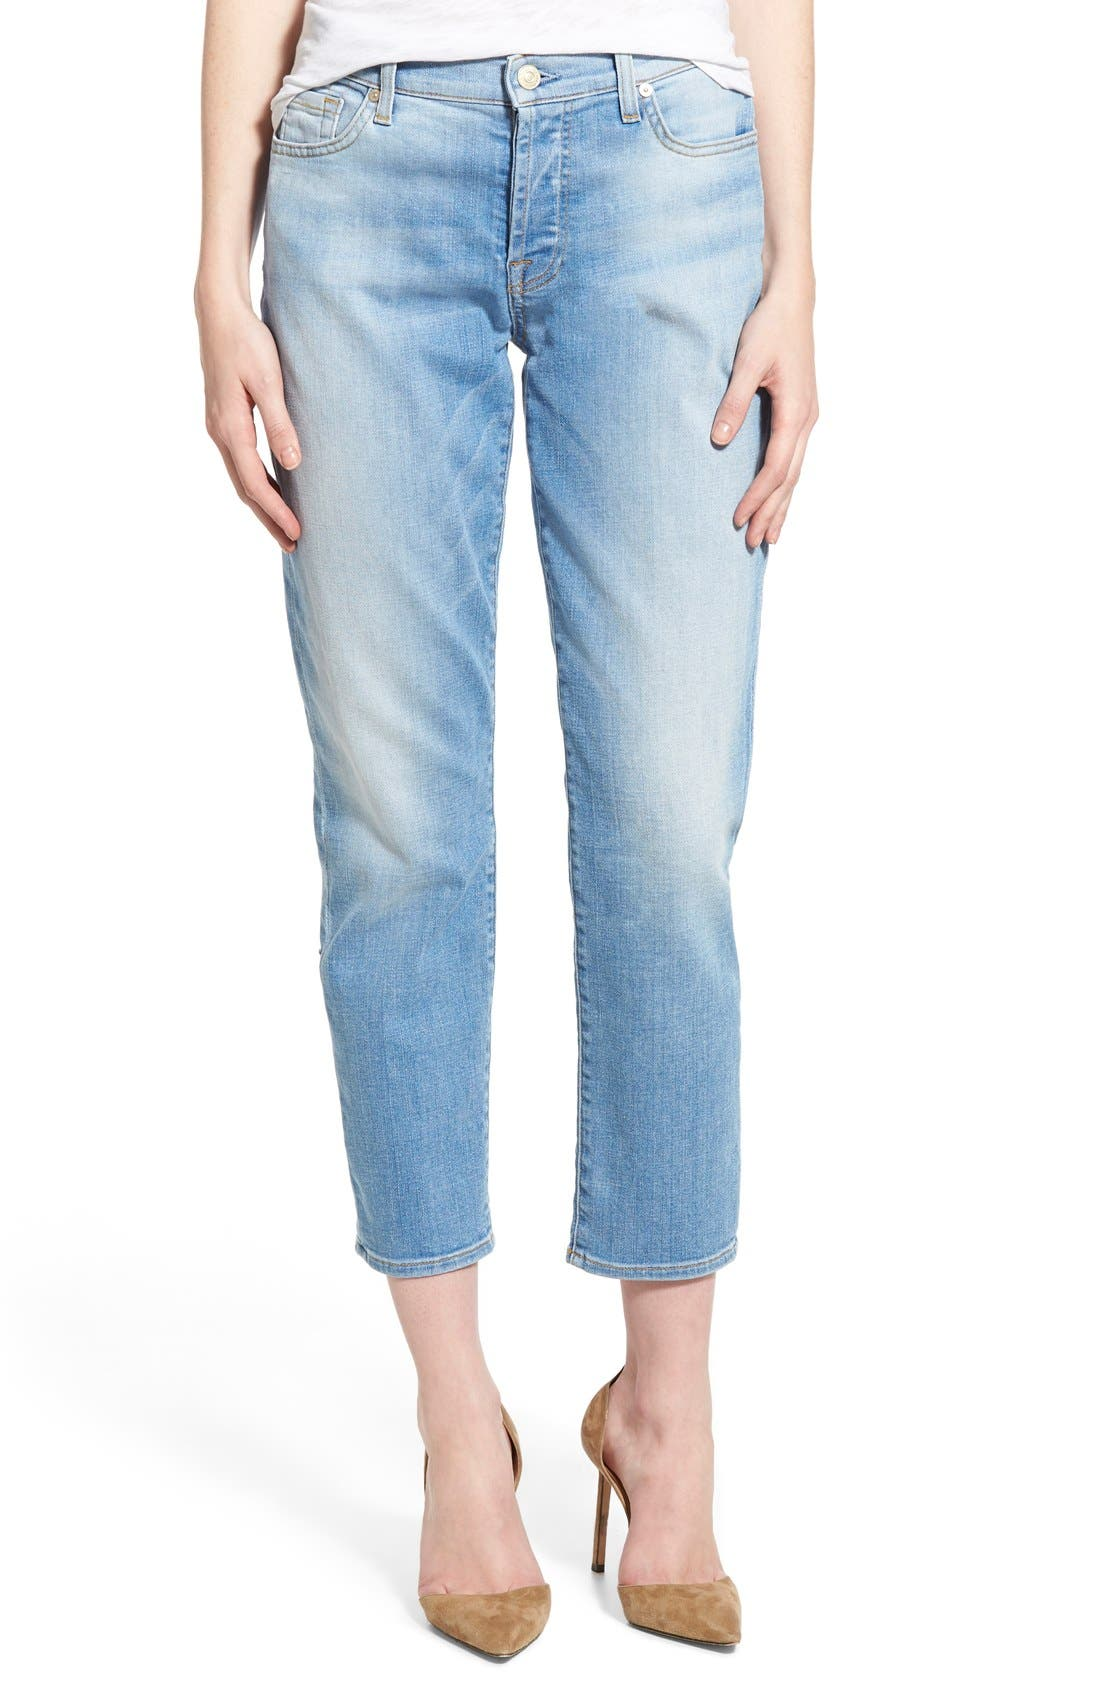 Alternate Image 1 Selected - 7 For All Mankind® 'Josefina' Mid Rise Boyfriend Jeans (Mediterranean Sky)